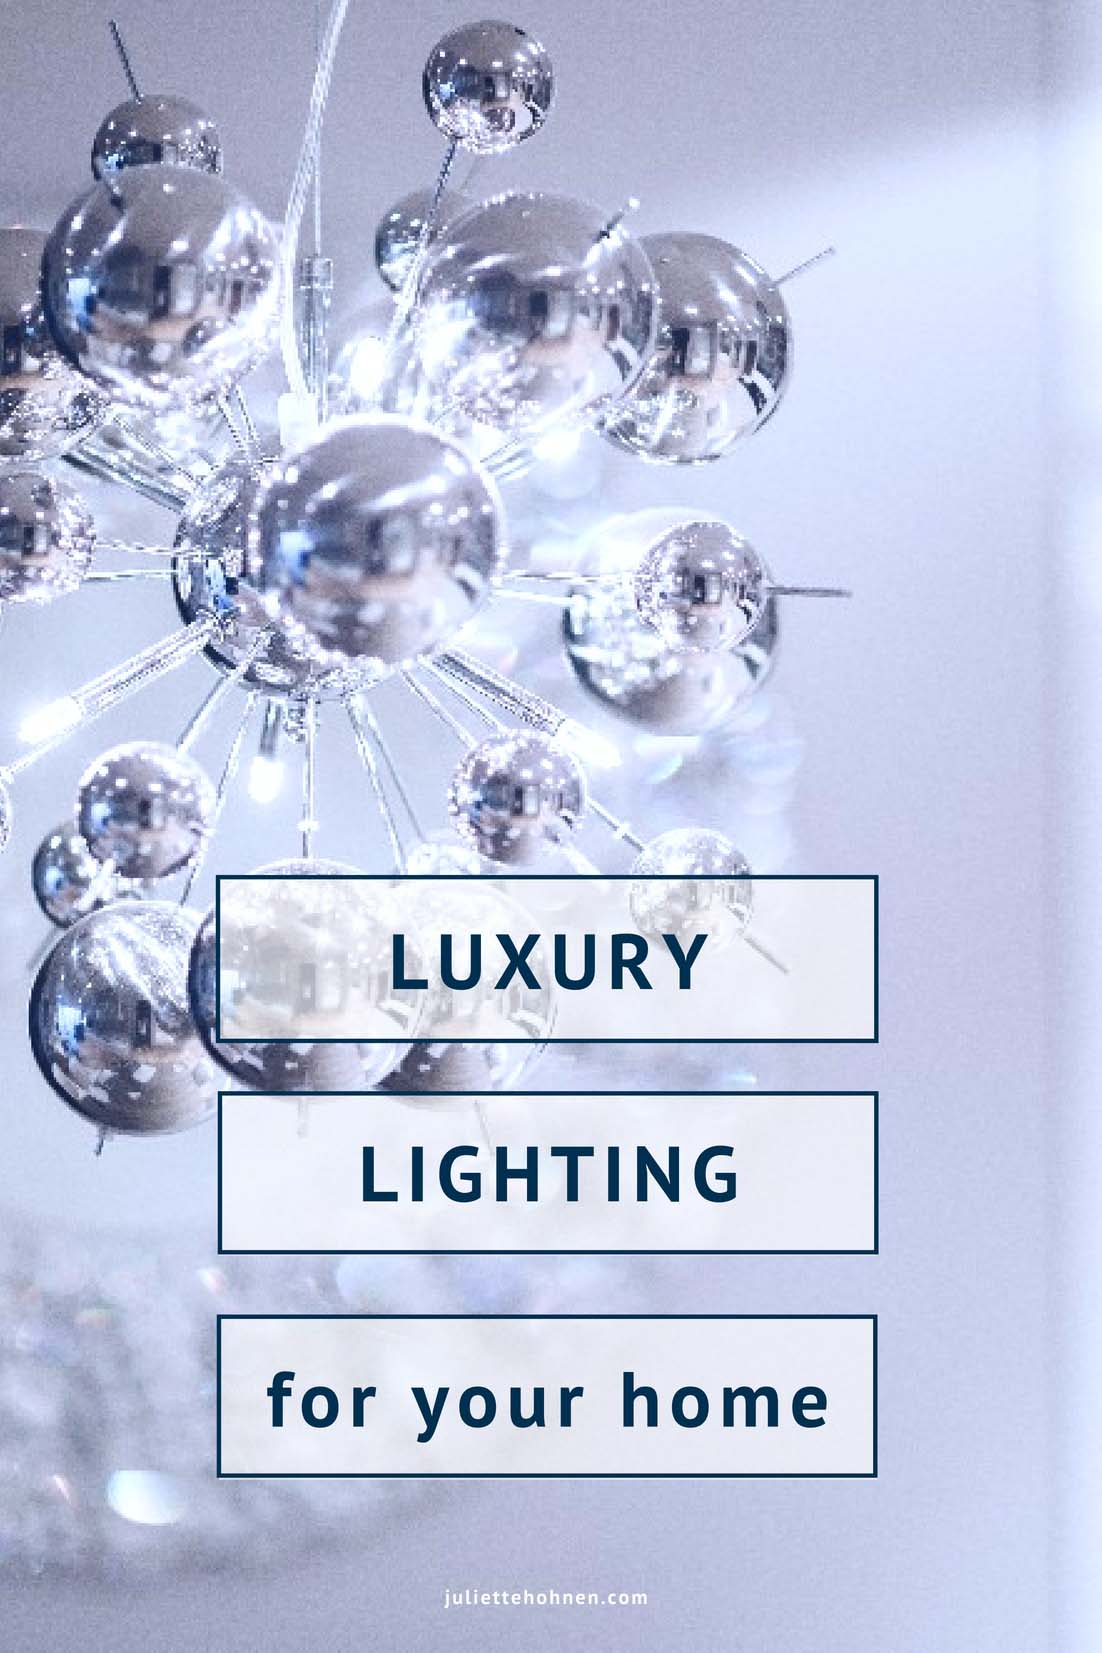 Luxury Lighting Ideas for Your Home